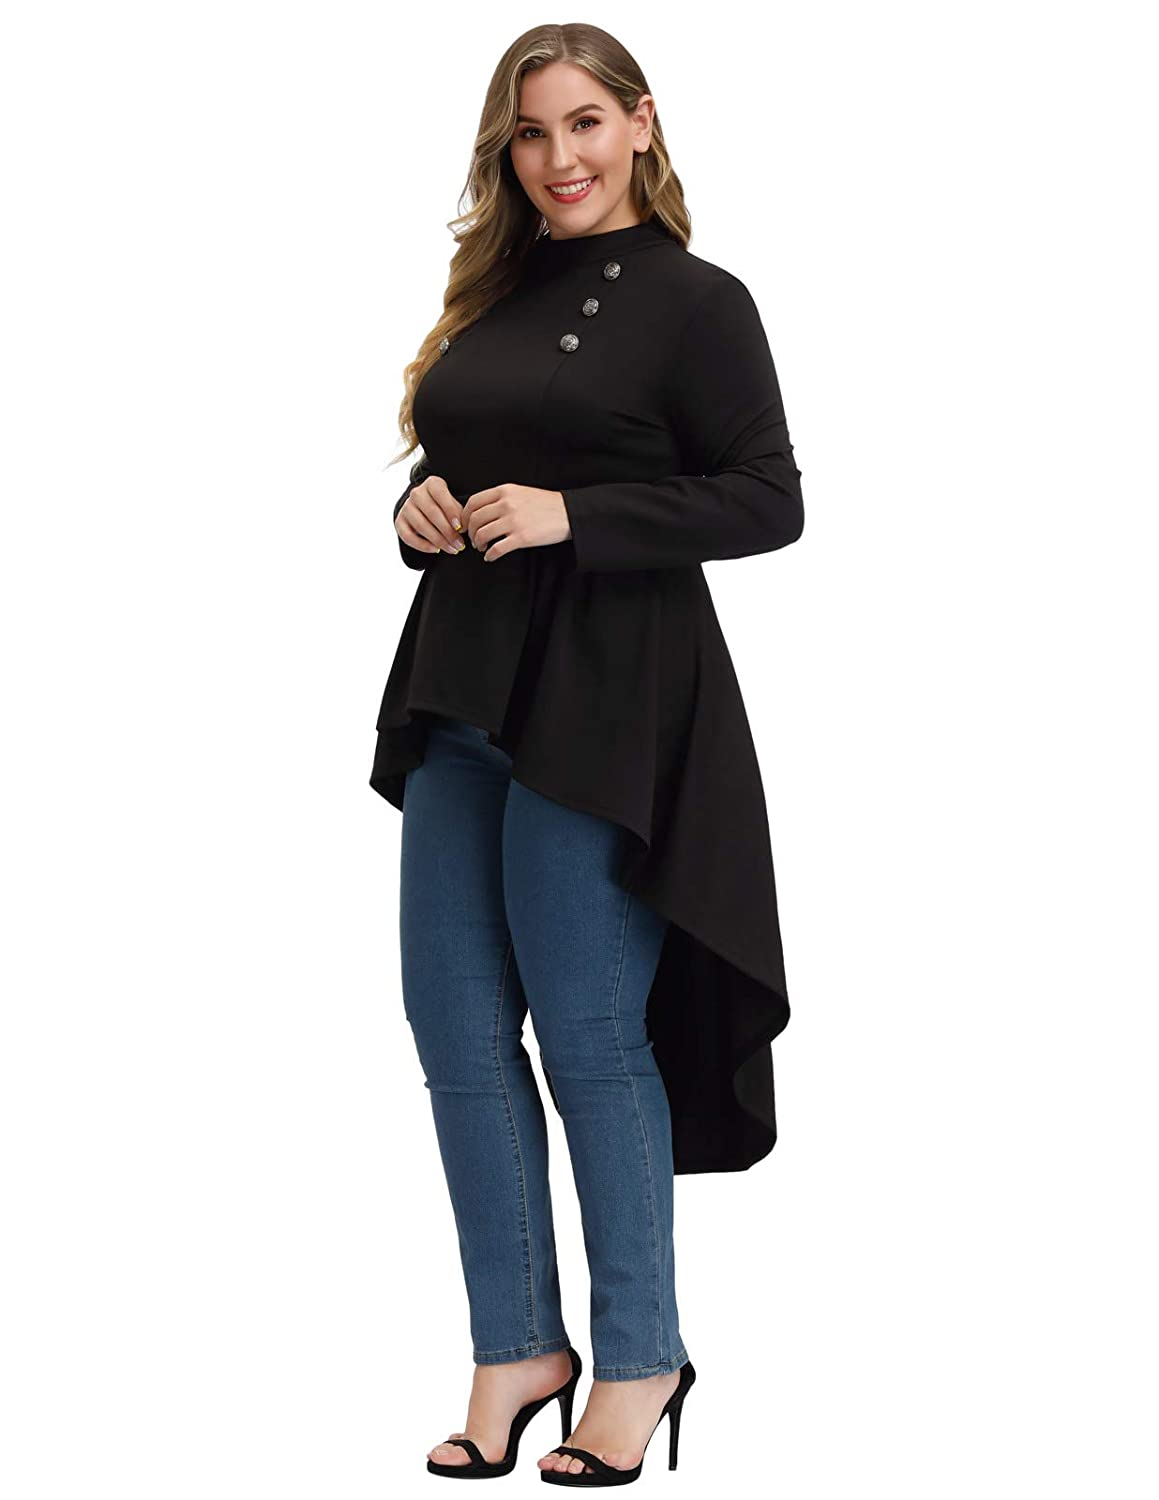 Steampunk Tops | Blouses, Shirts Woman Plus Size Steampunk Shirt Gothic Victorian Long Sleeve Blouse Top $30.99 AT vintagedancer.com